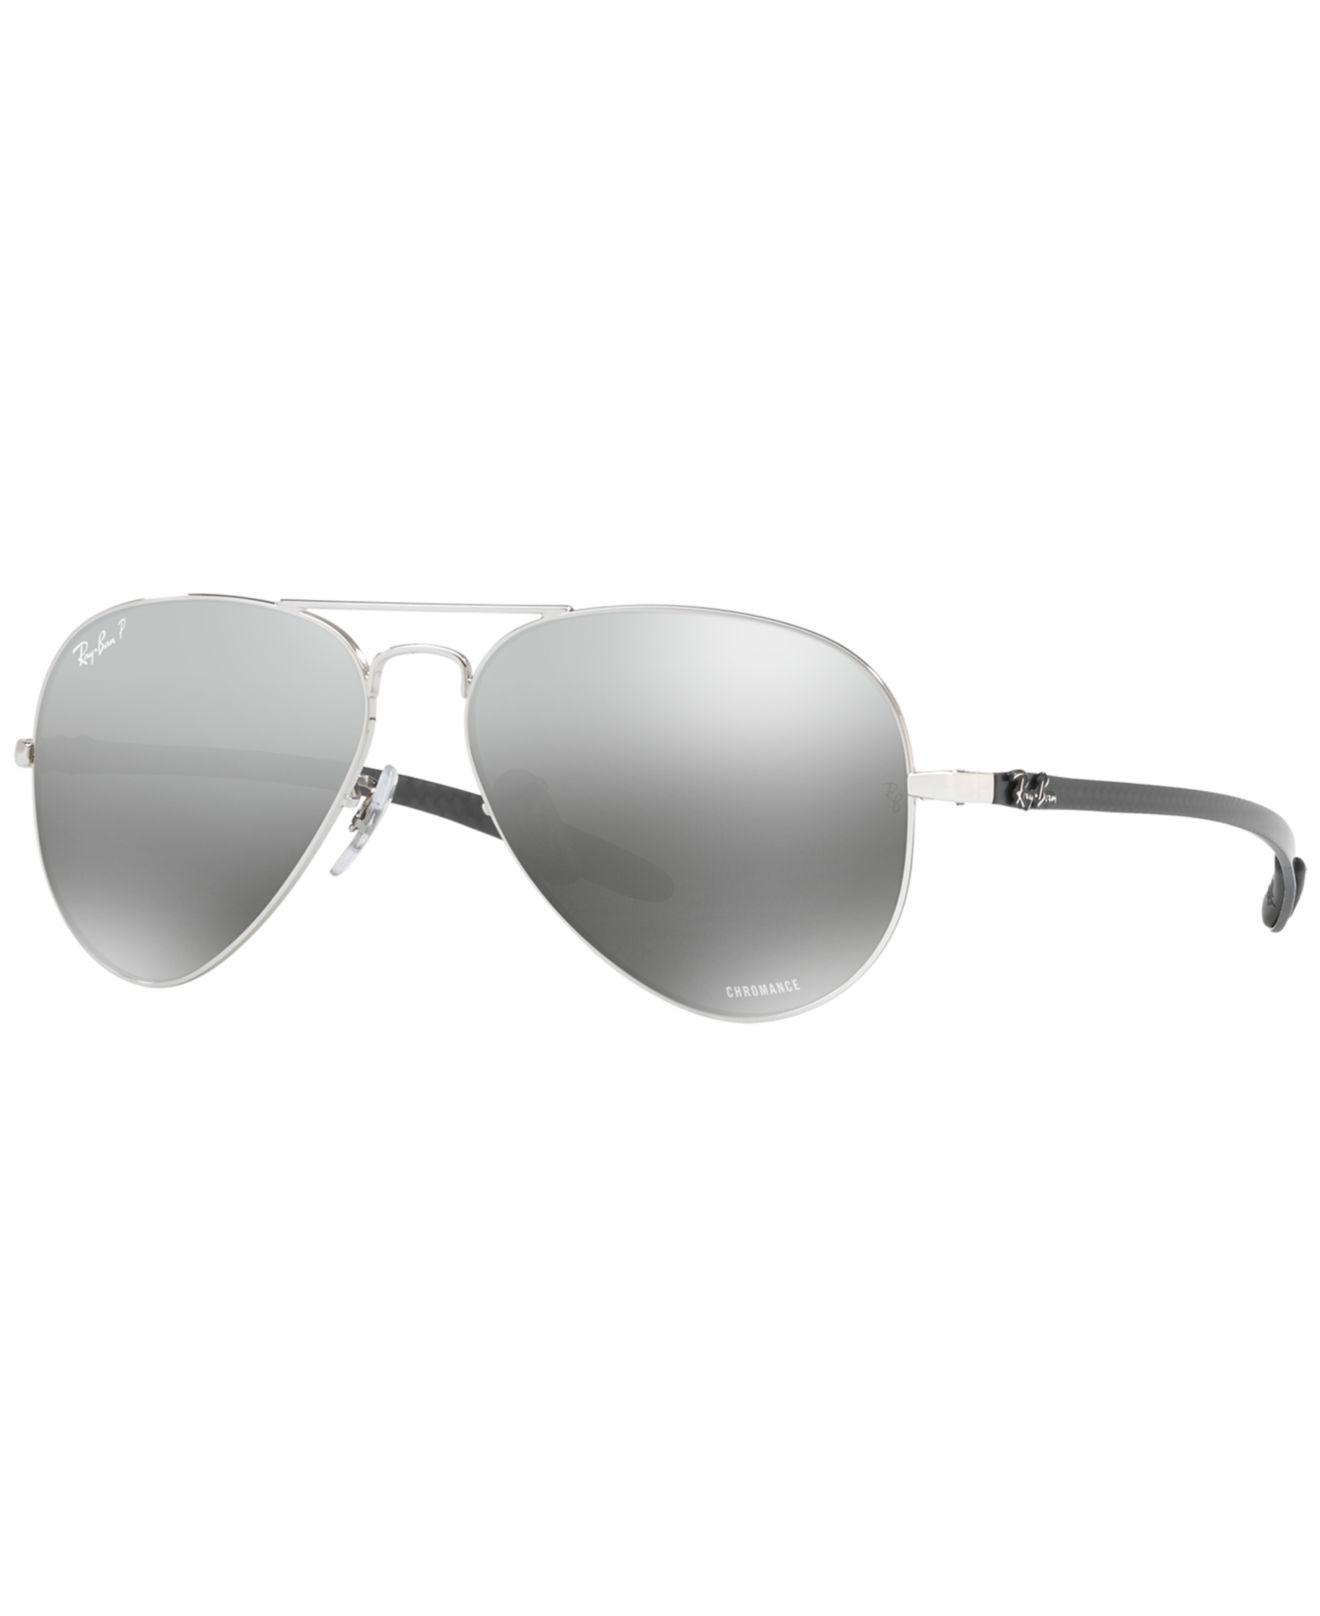 1d1145dcf9 Ray-Ban. Men s Gray Polarized Sunglasses